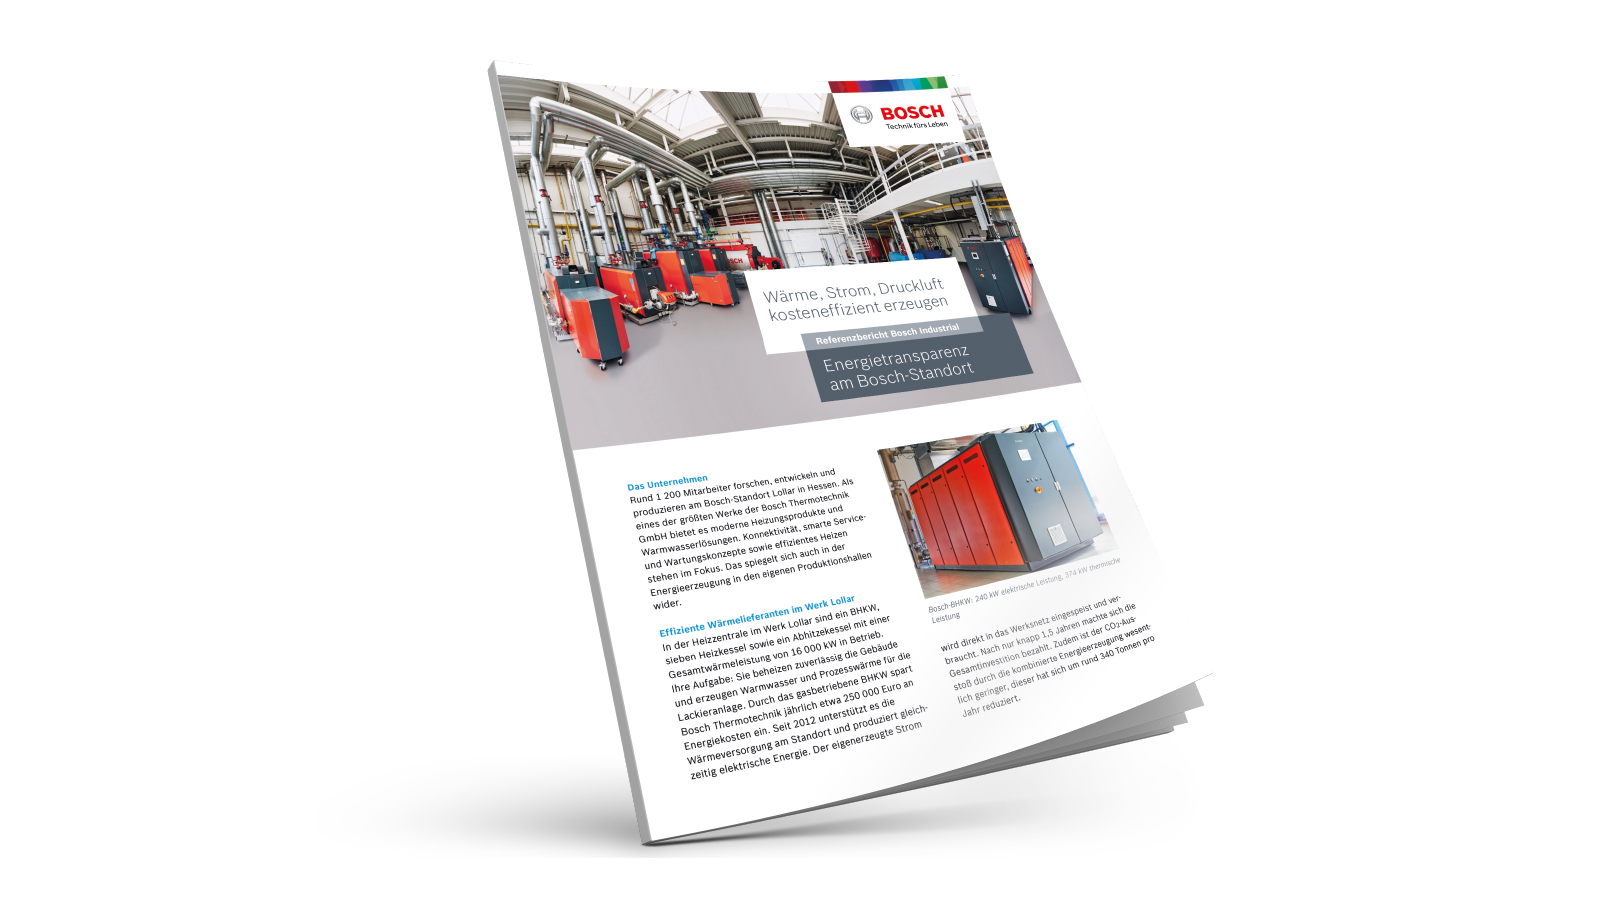 Bosch site Lollar: Generating heat, electric power and compressed air efficiently